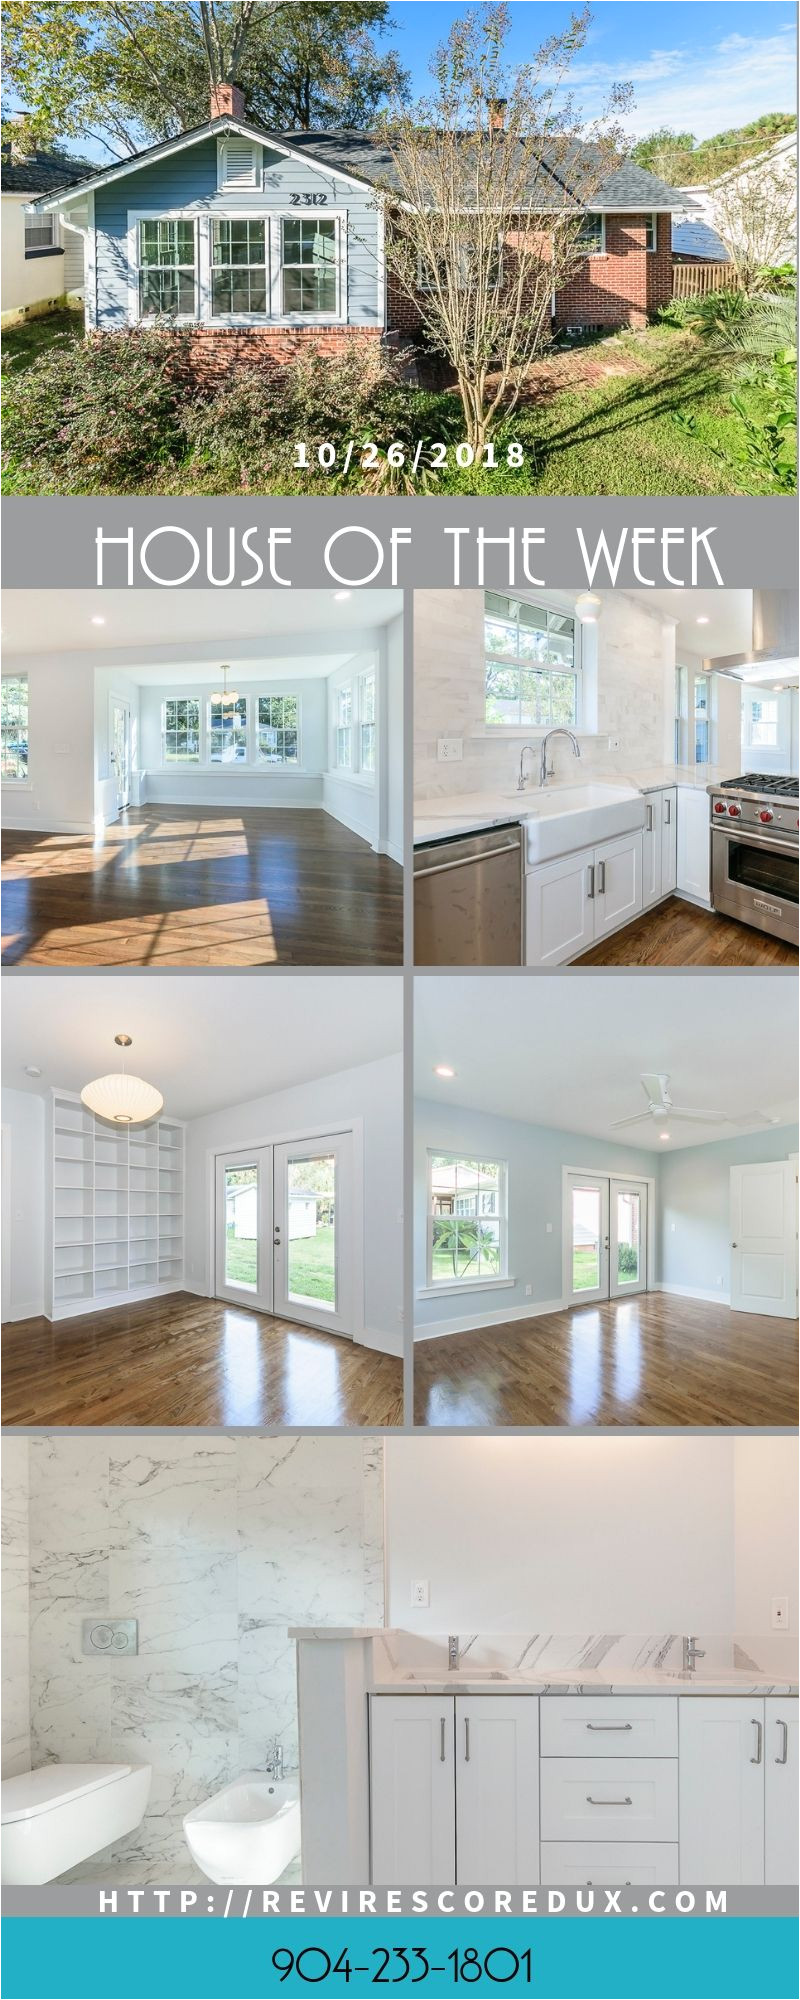 terrific reno in san marco neighborhood of jacksonville fl the use of white was stunning and to think it s a historically registered home